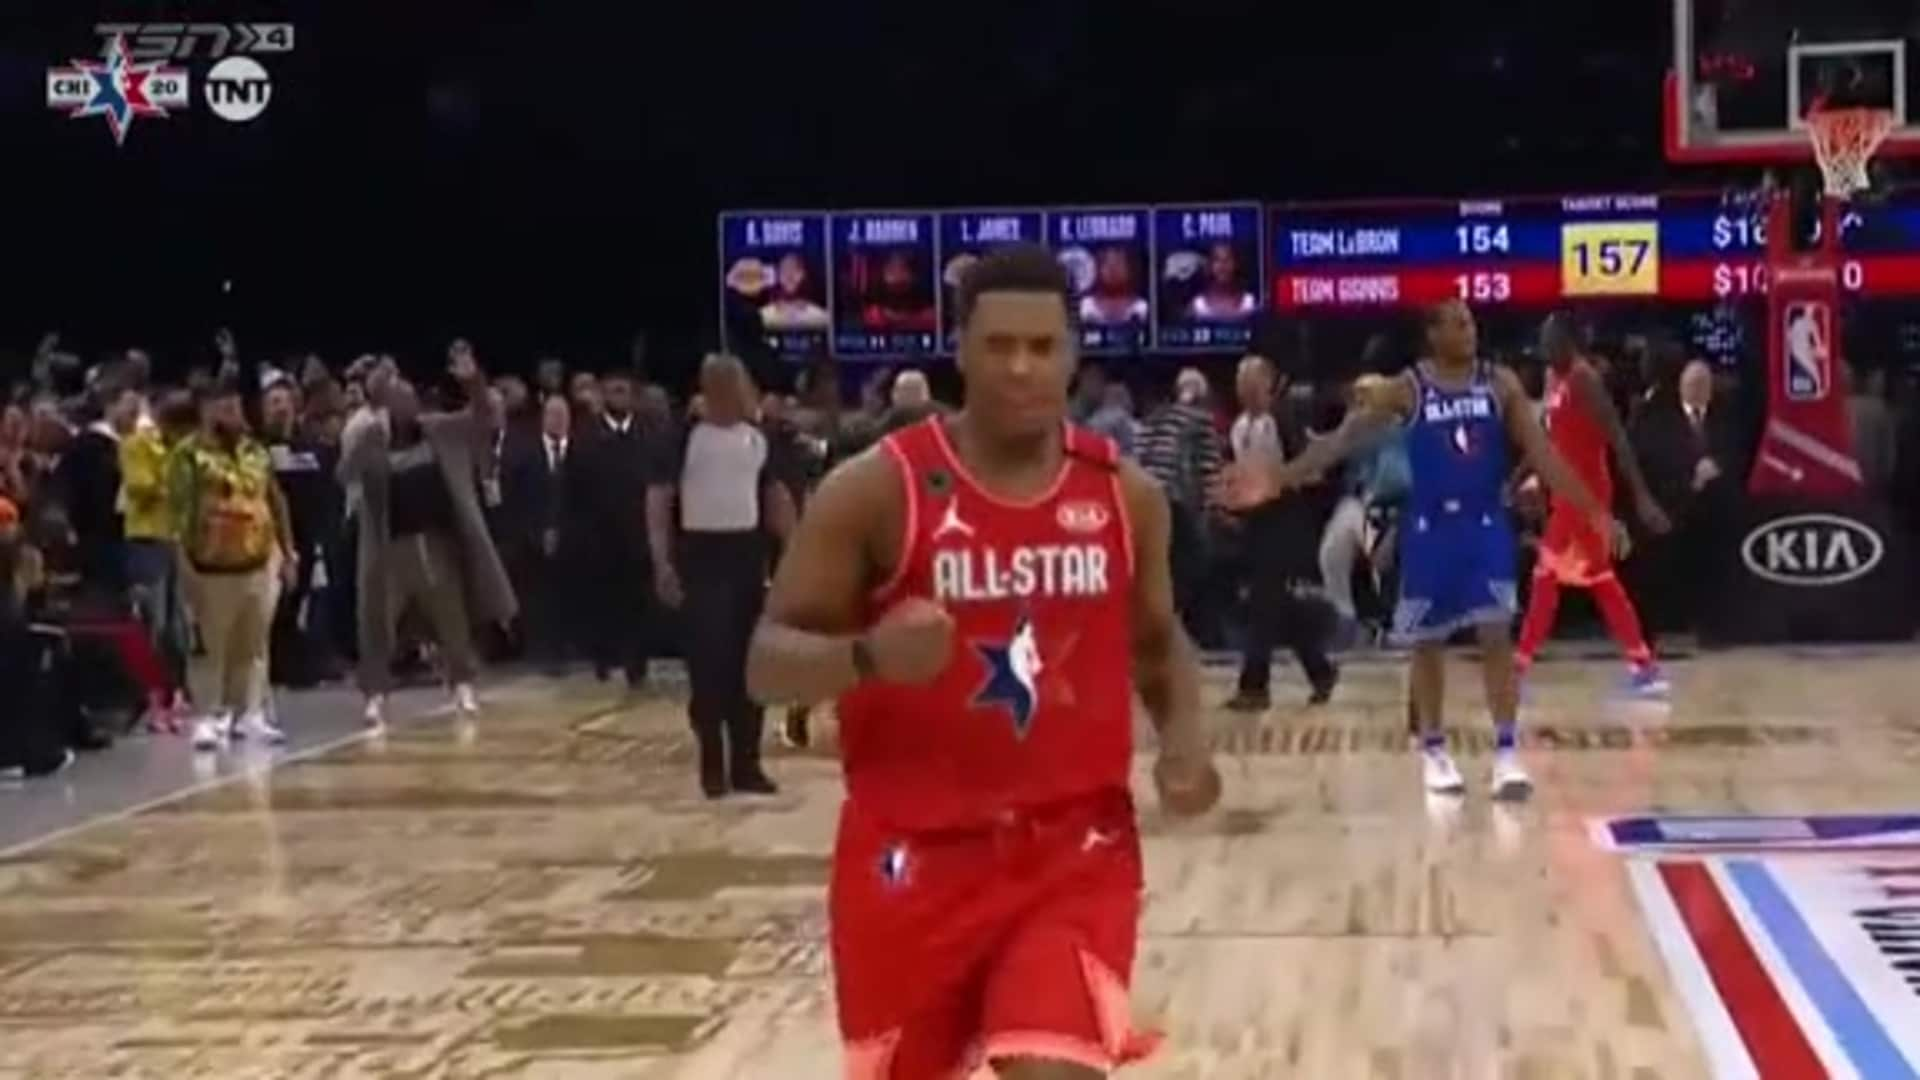 Game Highlights: All Star Game - February 16, 2020